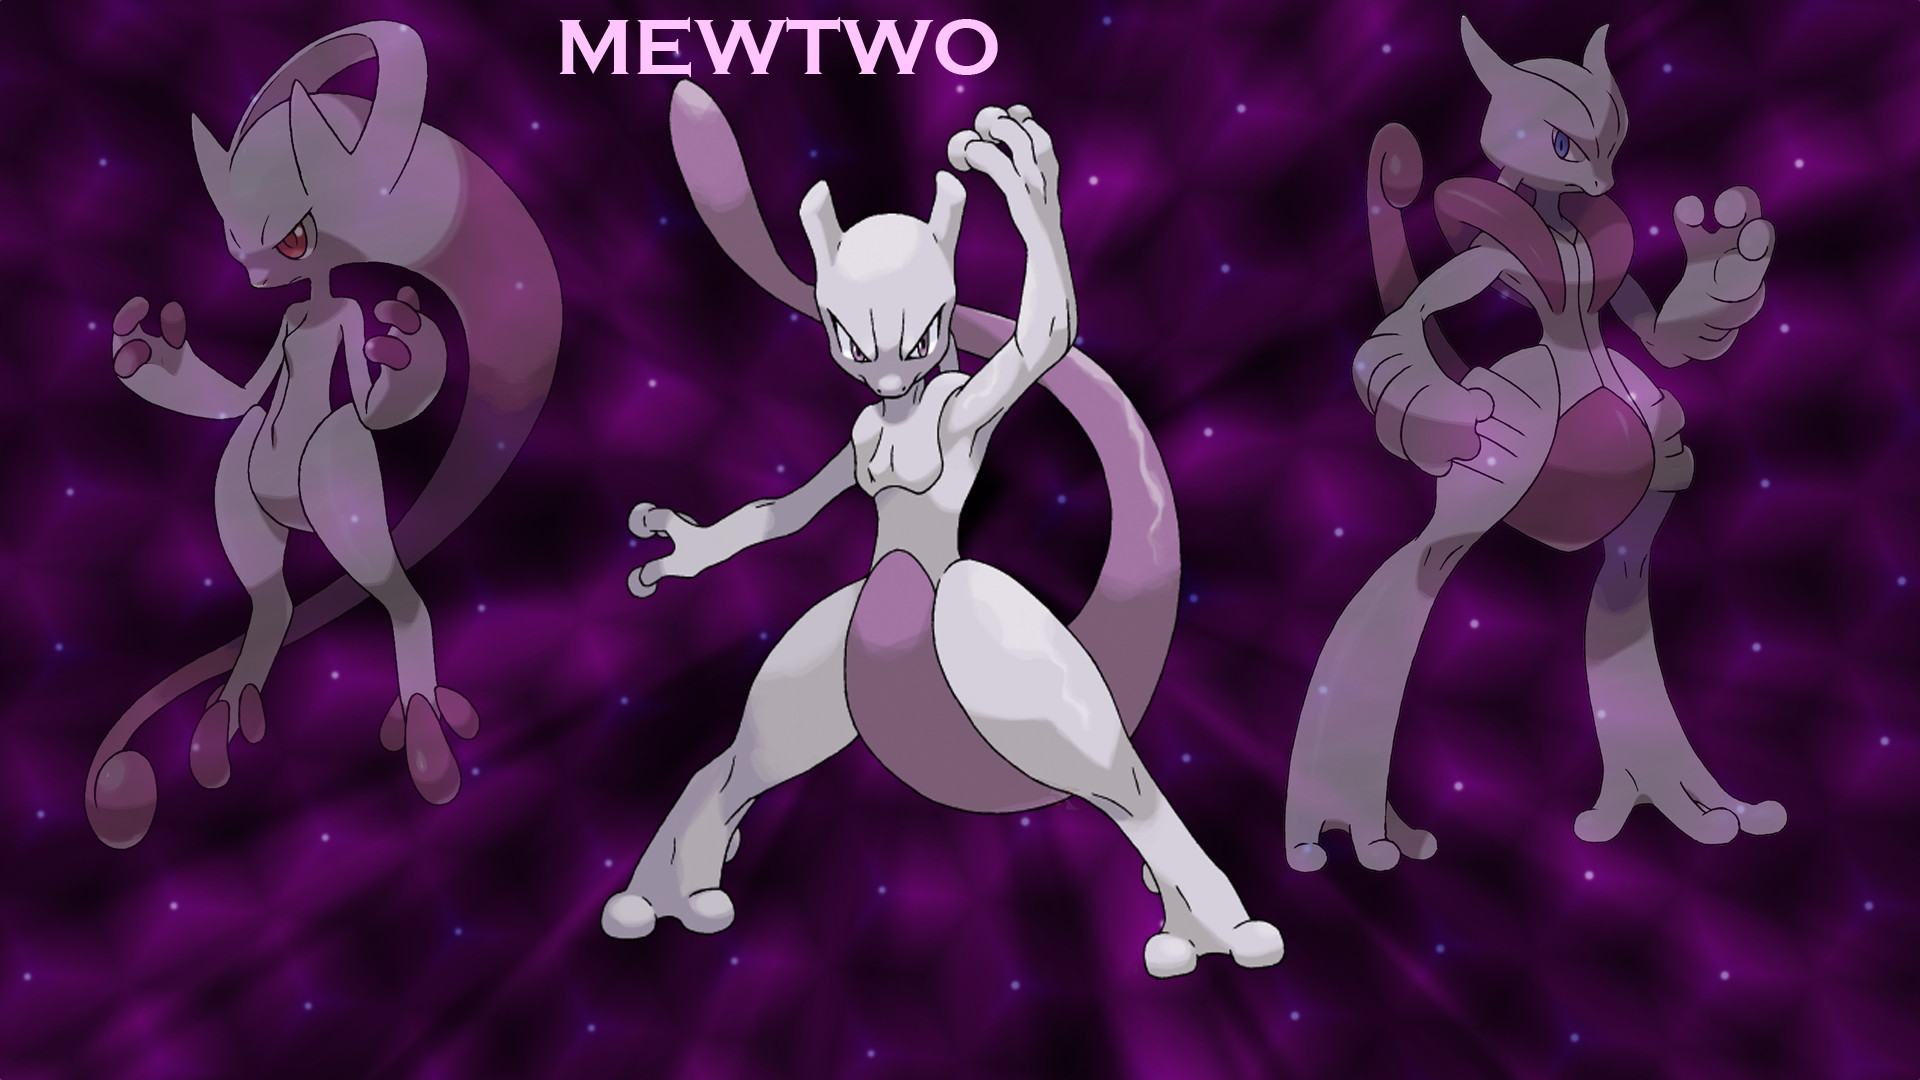 Mewtwo Wallpaper Iphone Posted By Zoey Walker